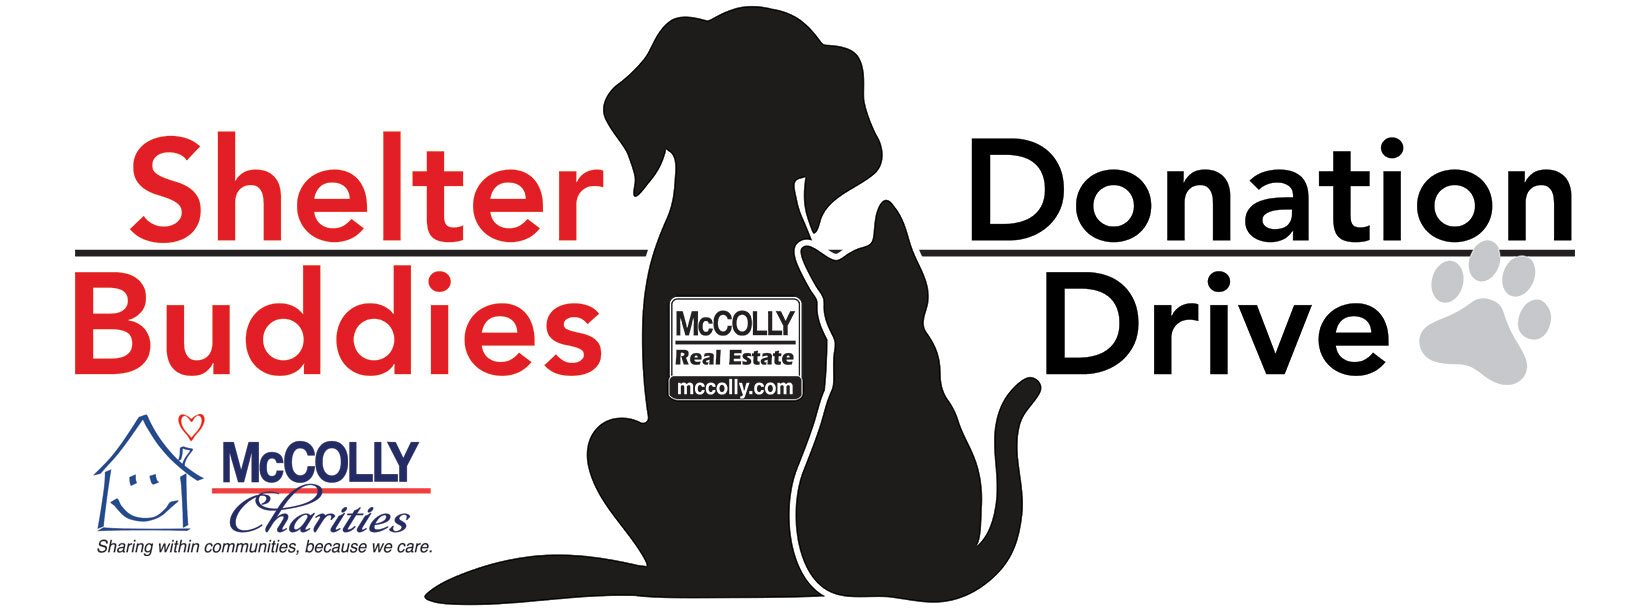 McColly Charities Shelter Buddies Donation Drive